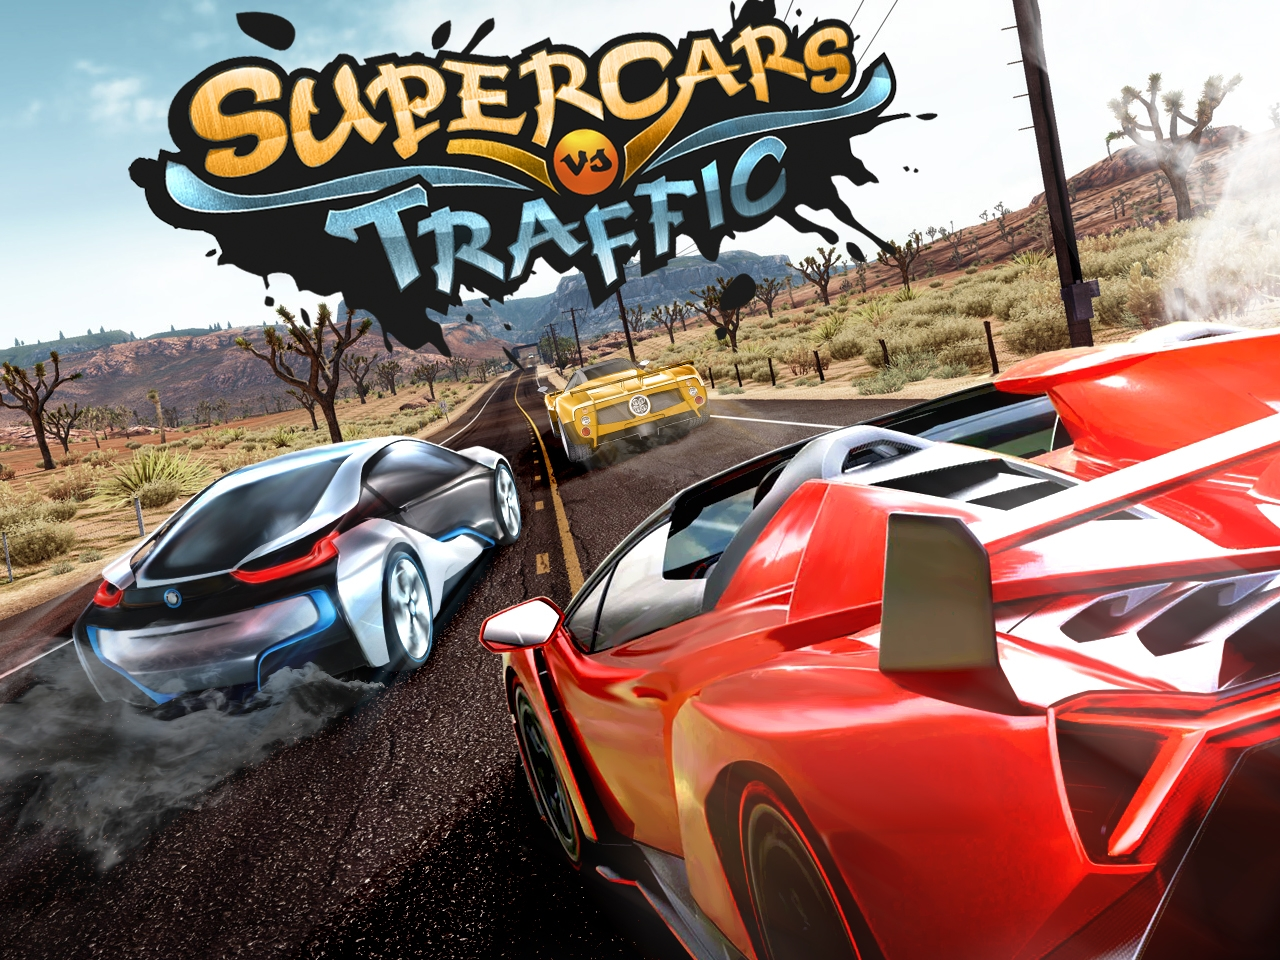 Supercars VS Traffic